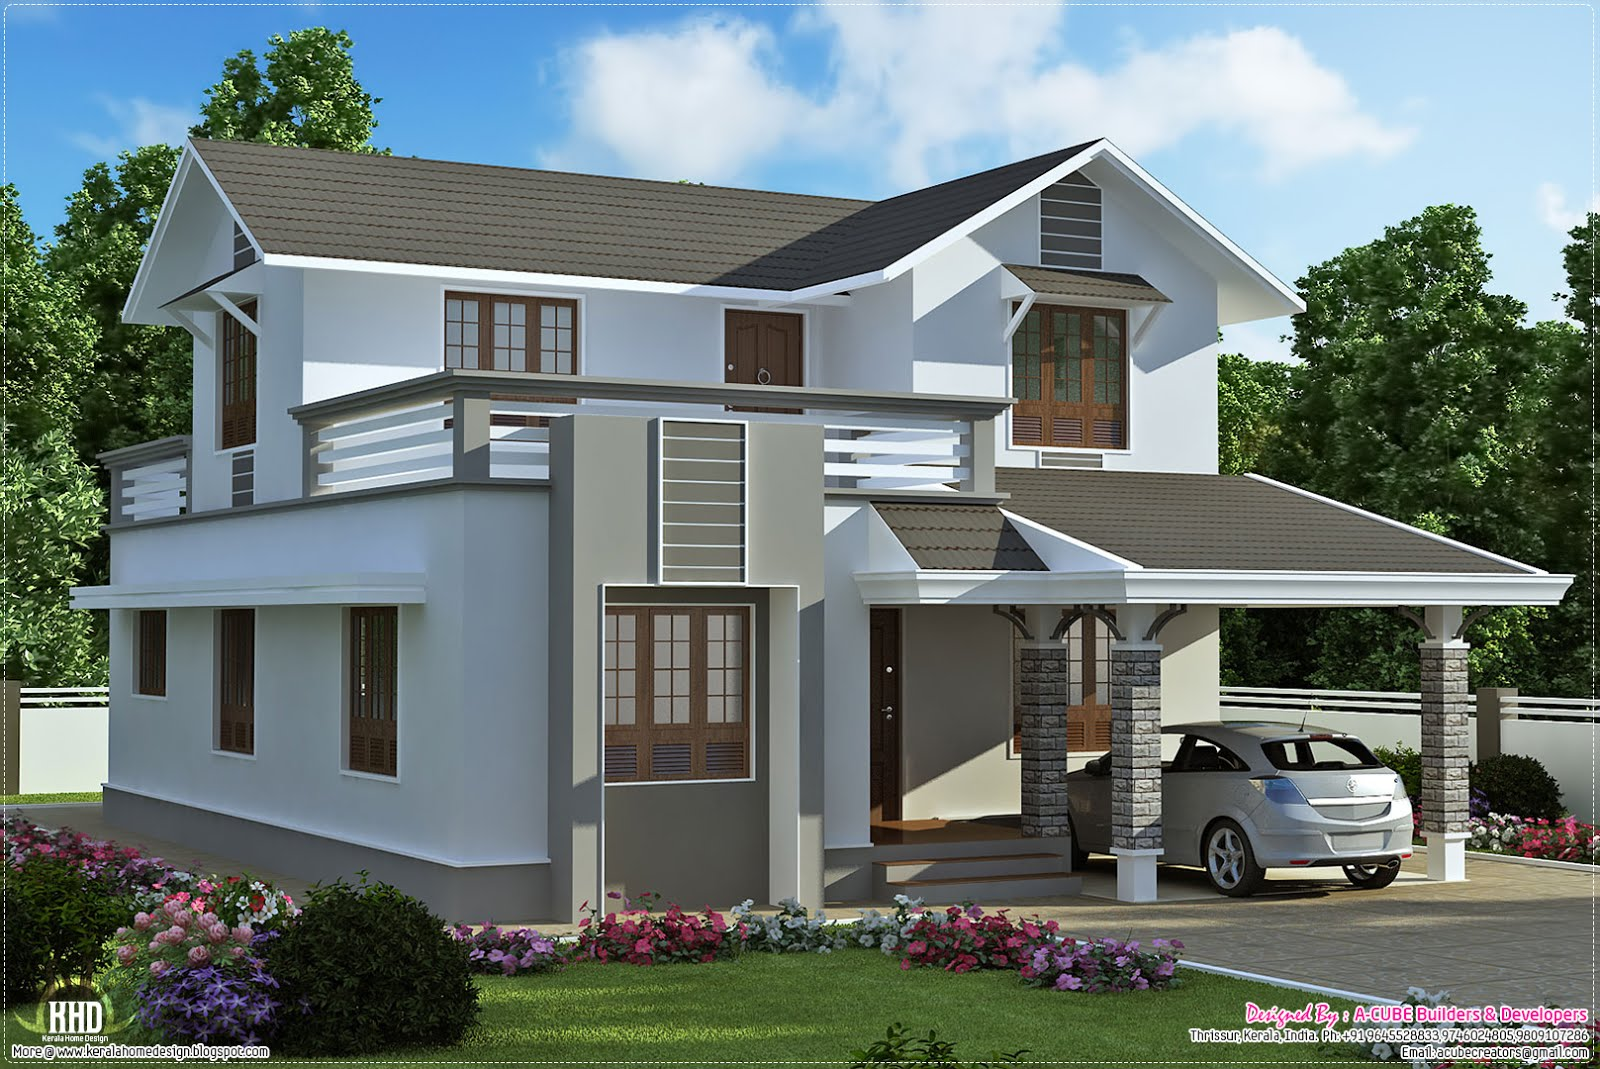 2 storey modern house designs and floor plans philippines images - Design house ...